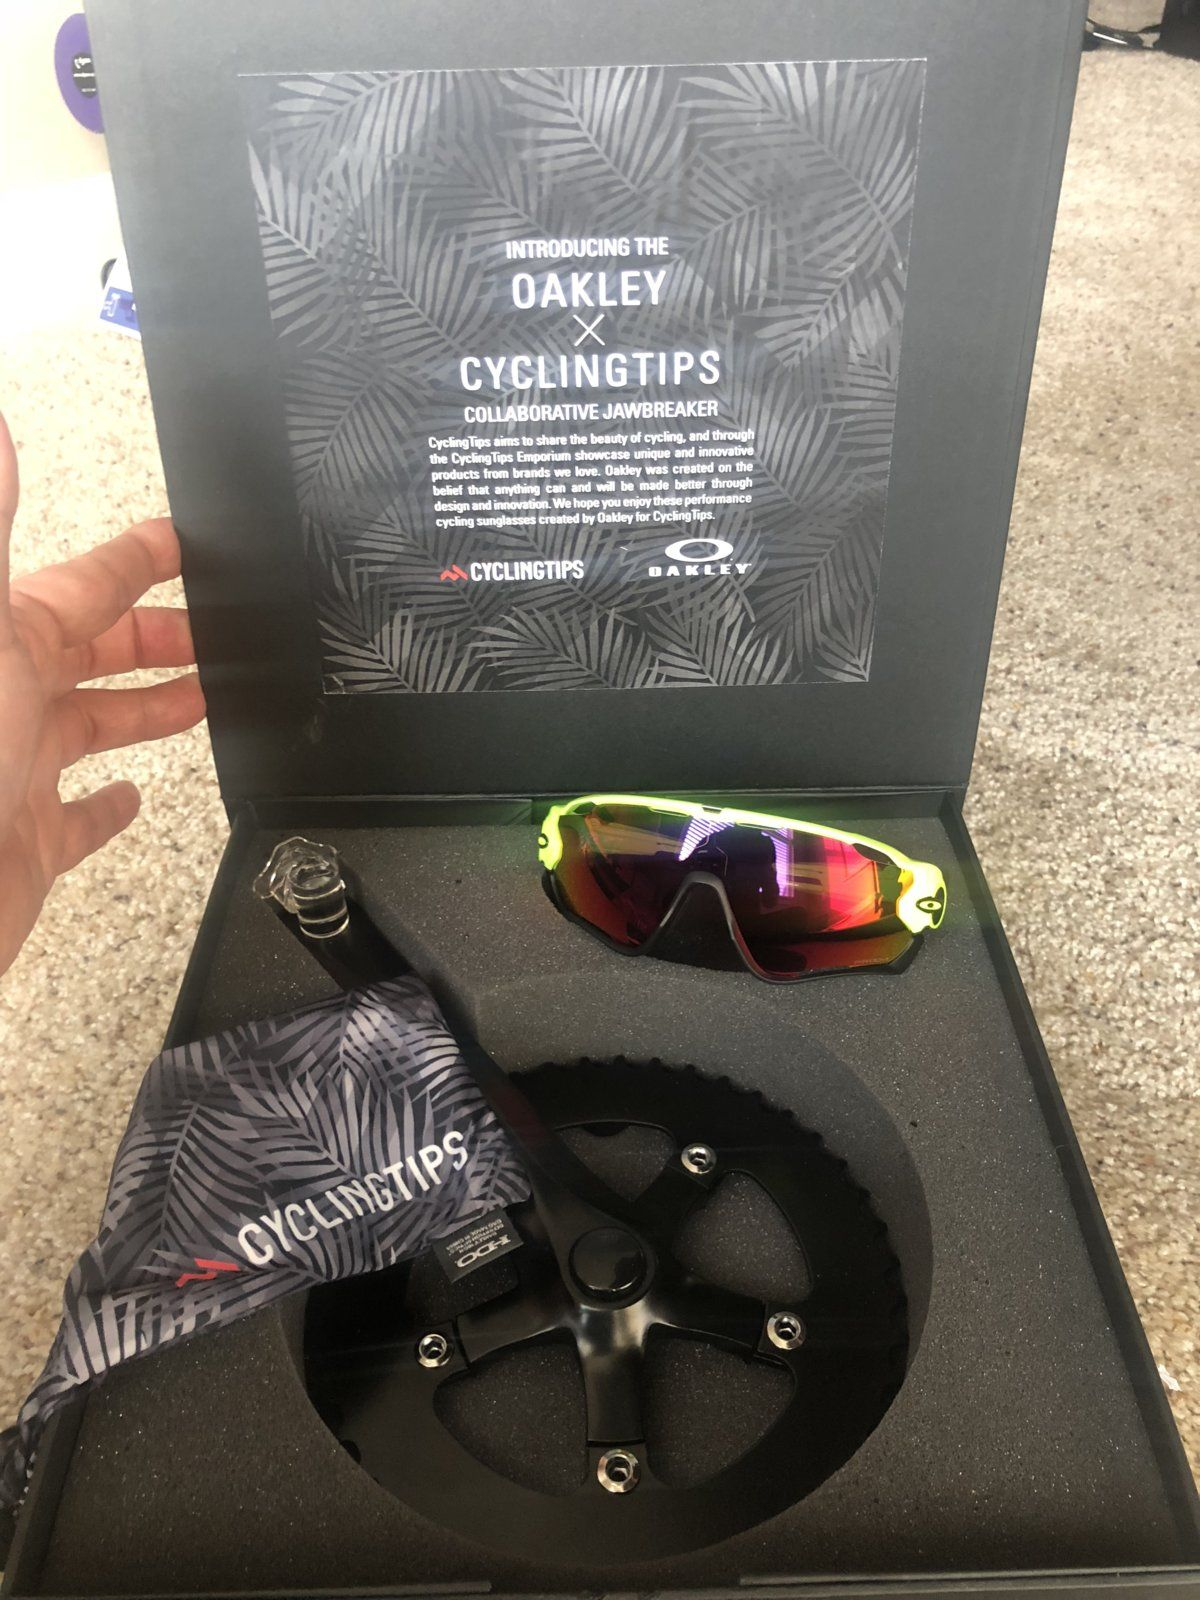 38a86c6279 Sold -    Price Adjustment   Oakley and Cycling Tips Collaboration ...